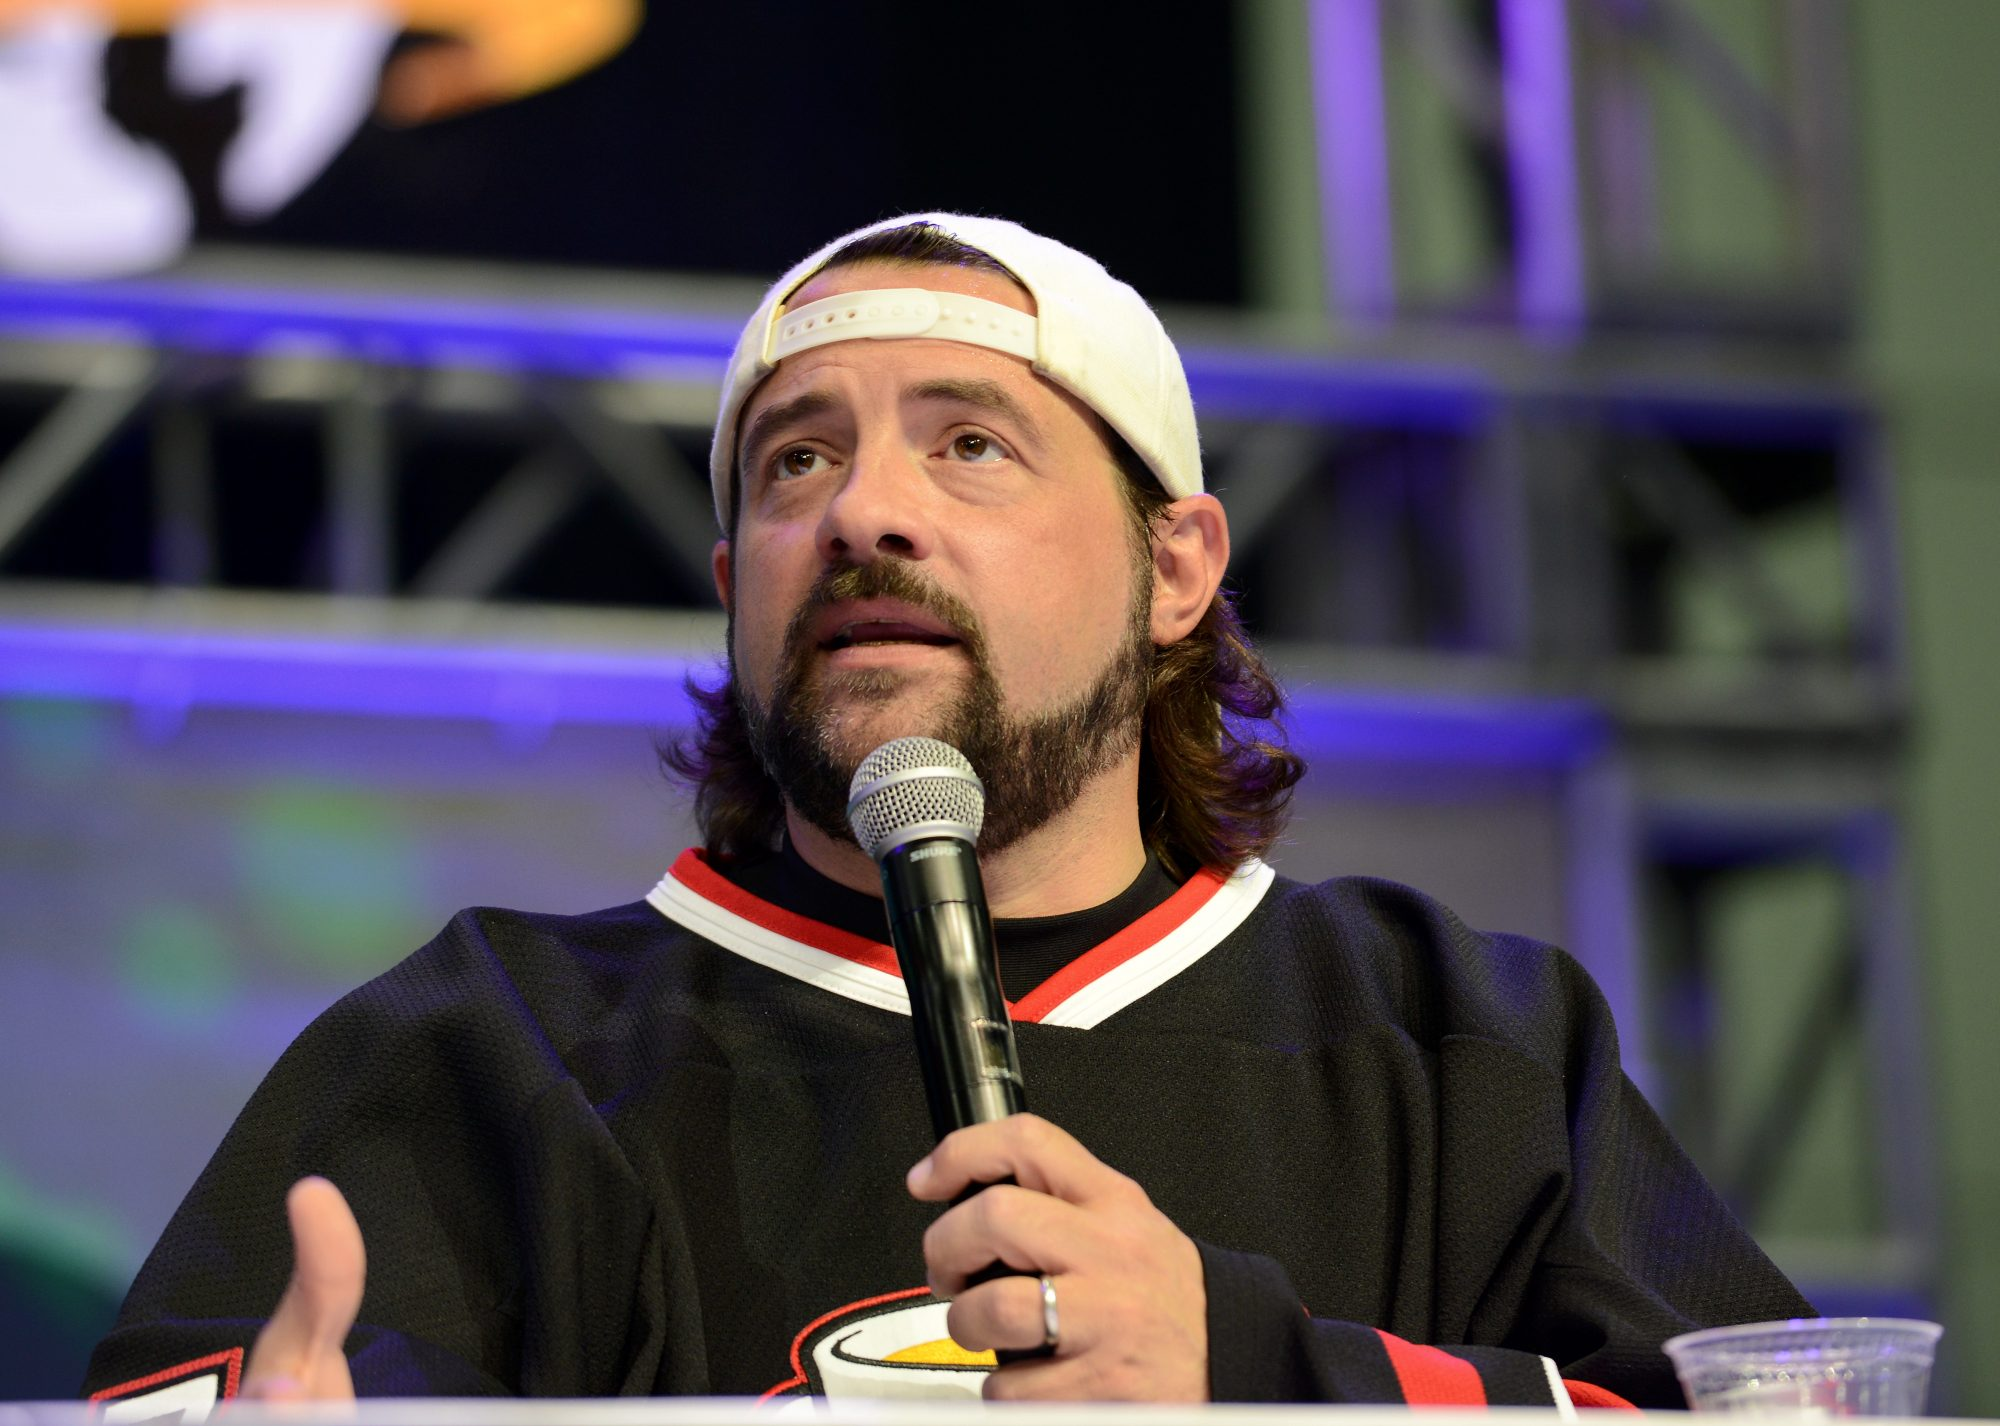 Kevin Smith at Stan Lee's Los Angeles Comic Con 2017